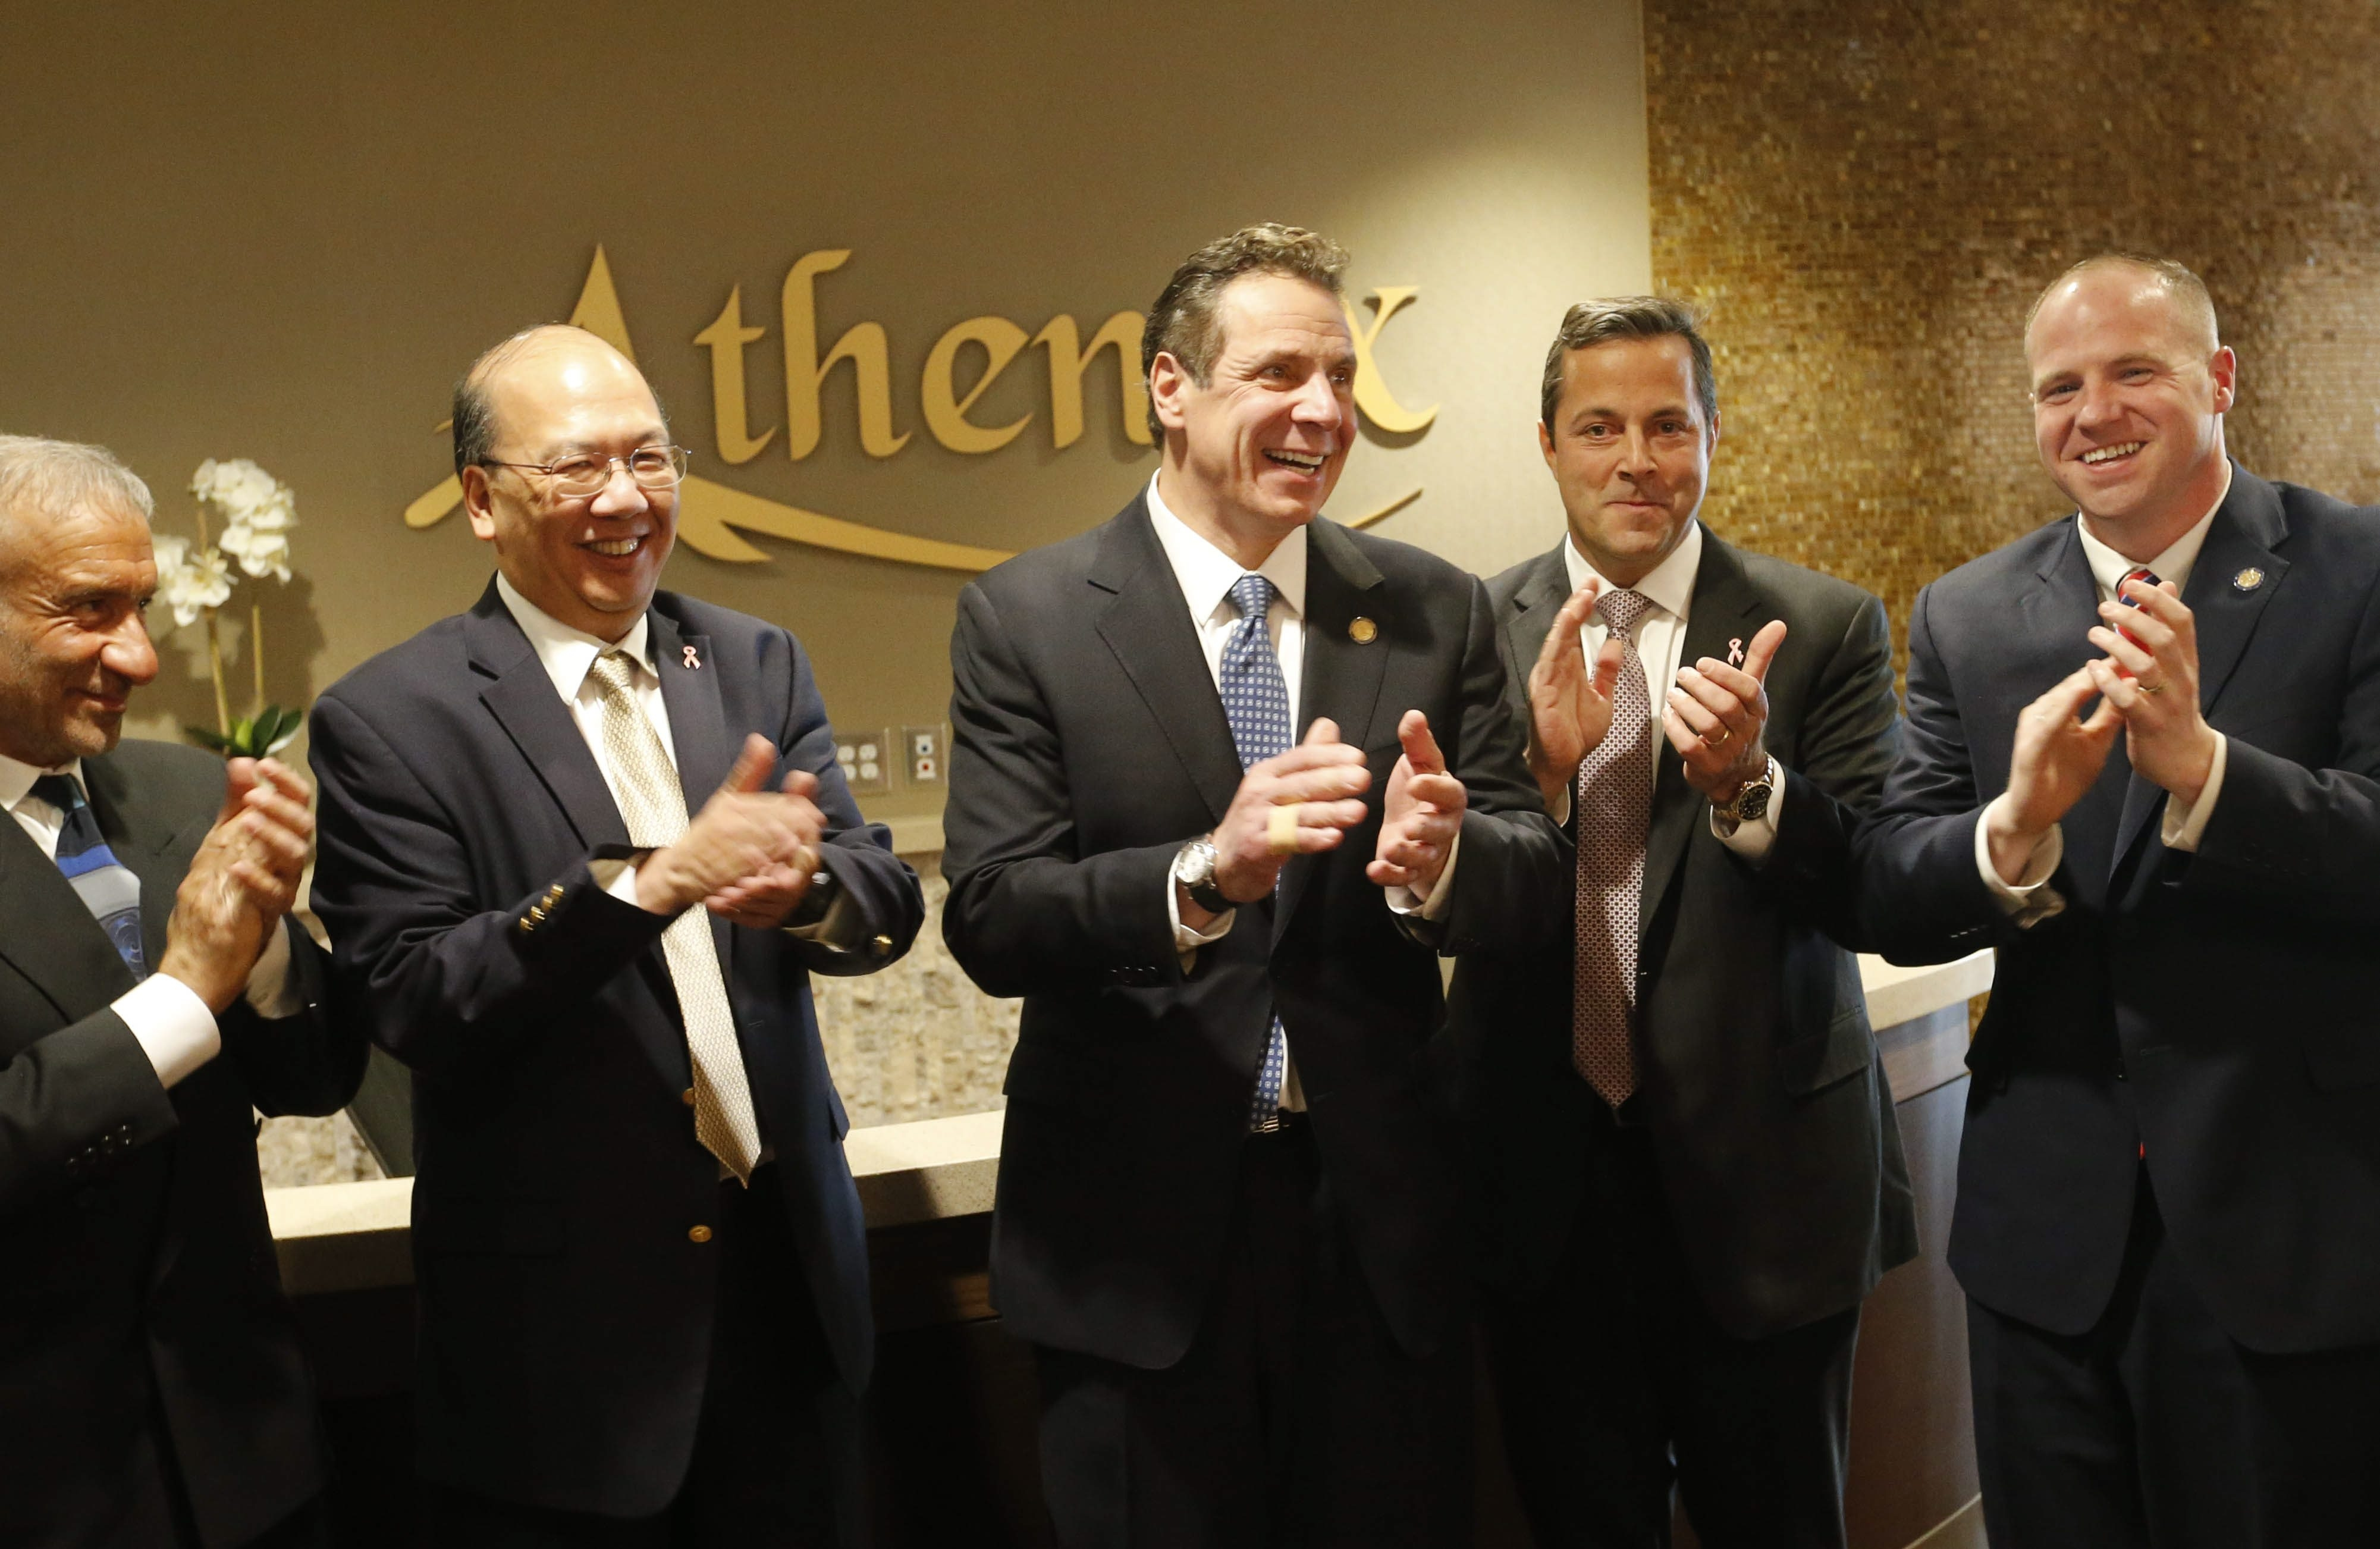 Gov. Andrew Cuomo, center, company officers and dignitaries applaud after cutting a ribbon to mark the opening of the new Athenex facility at Conventus in Buffalo, Thursday, Feb. 11, 2016. From left are Alain E. Kaloyeros President and CEO of SUNY Polytechnic Institute, Athenex CEO Johnson Y. N. Lau, Gov. Cuomo, Athenex COO and CFO Flint D. Besecker and State Senator Tim Kennedy. (Derek Gee/Buffalo News)